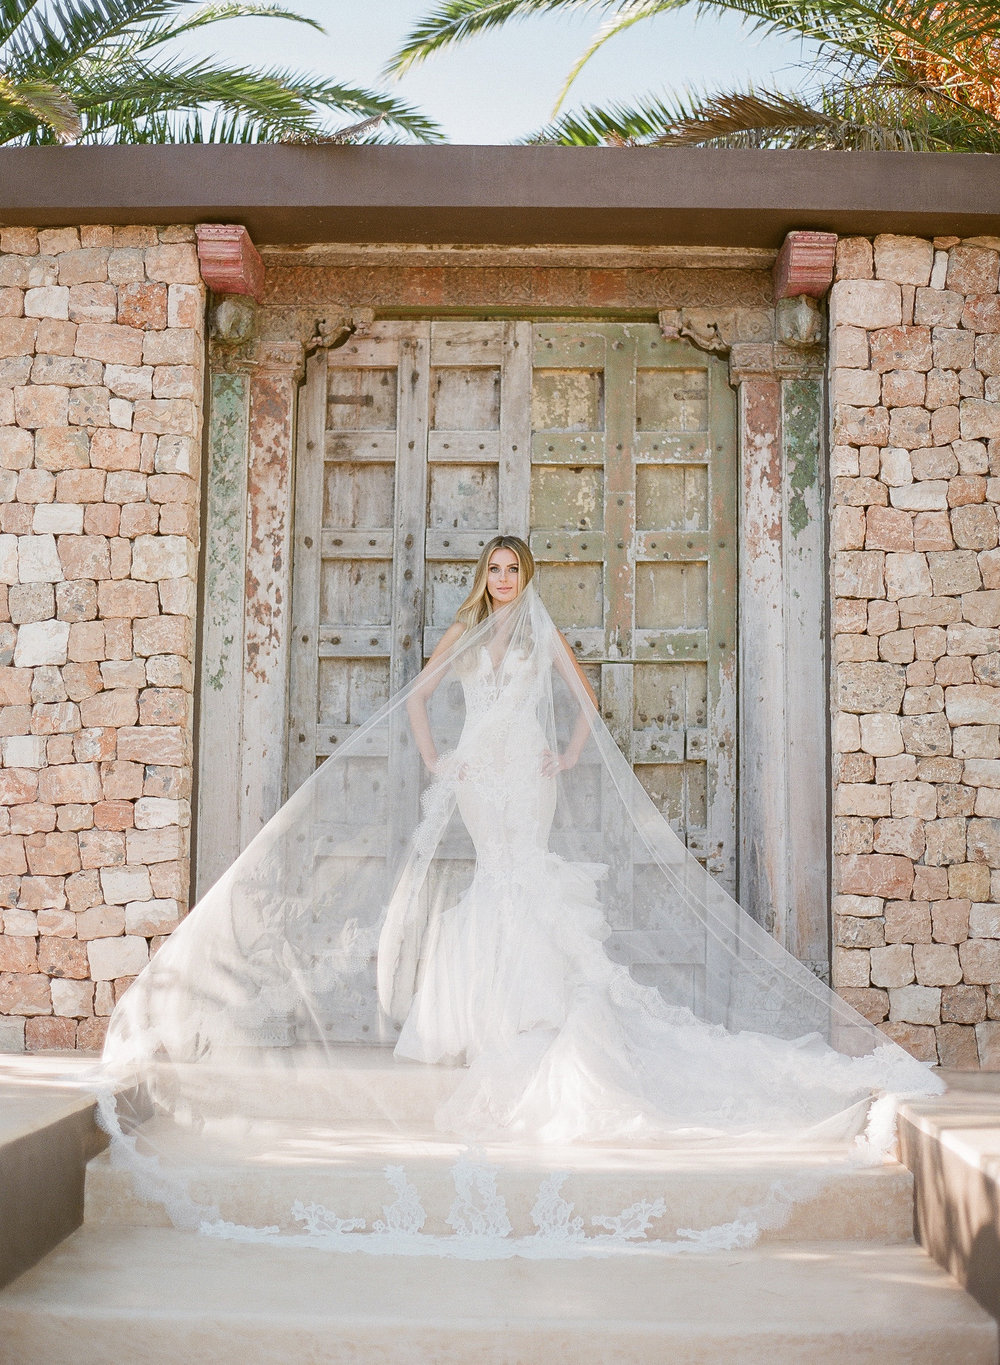 Pnina Torn wedding dress, ibiza wedding planner